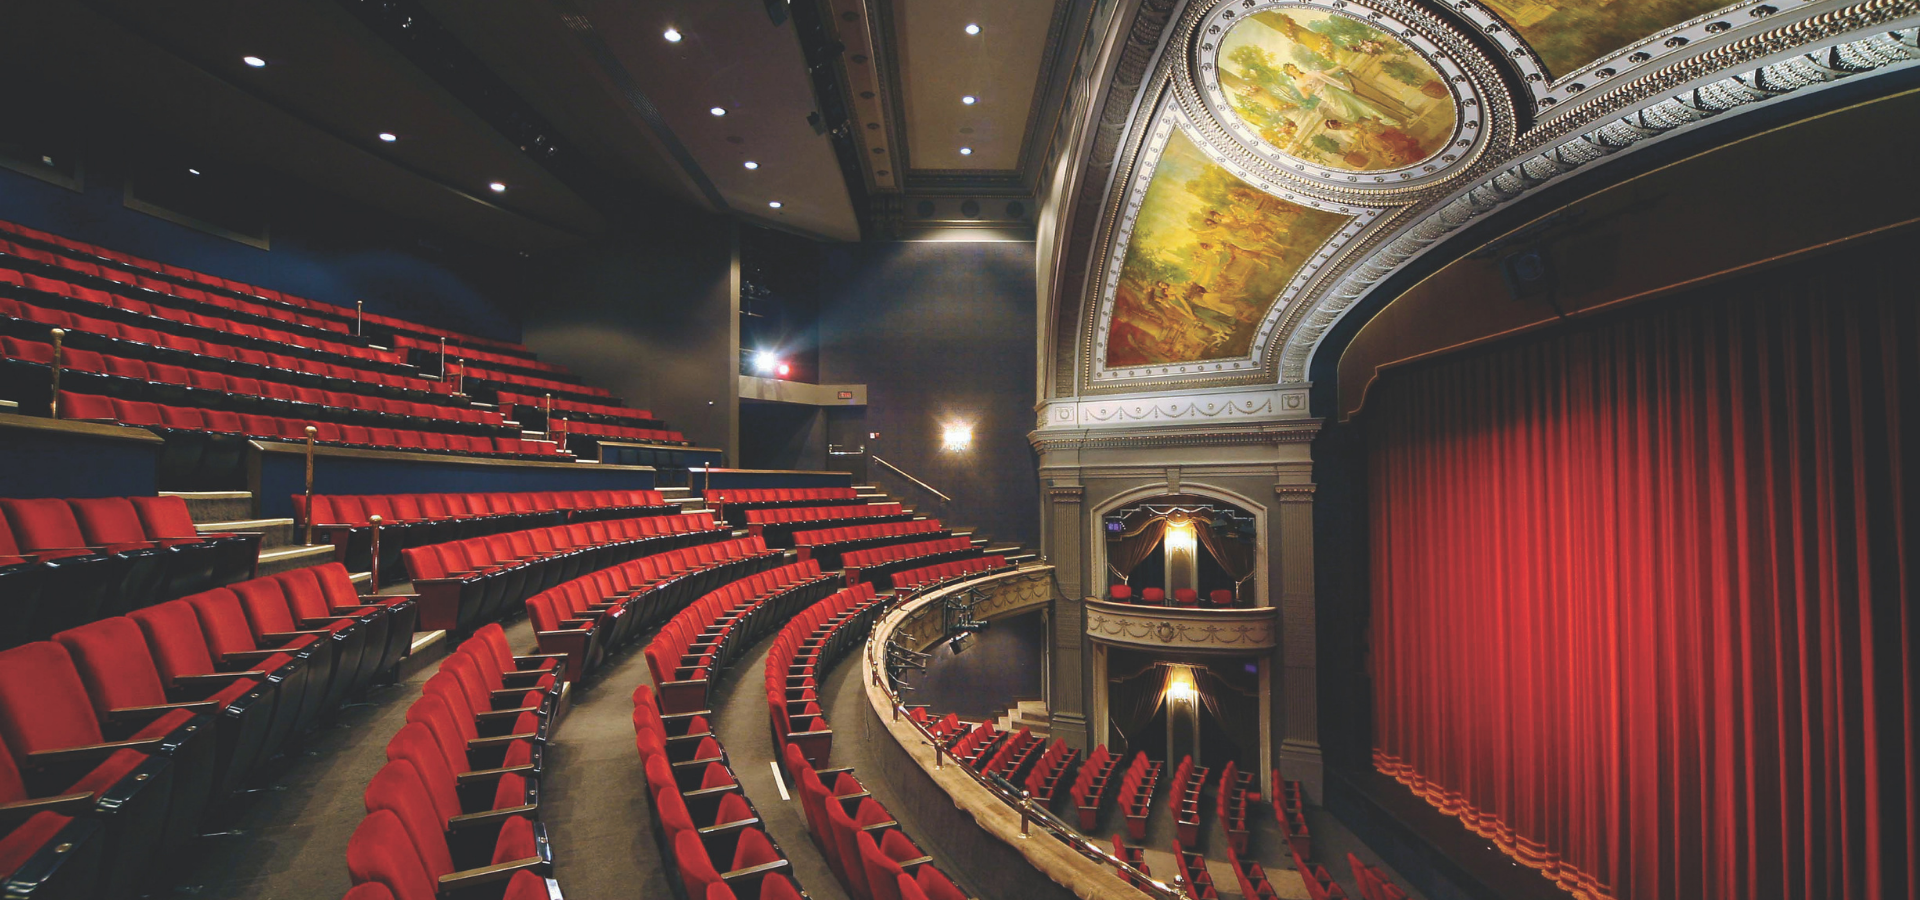 Inside the grand theatre.